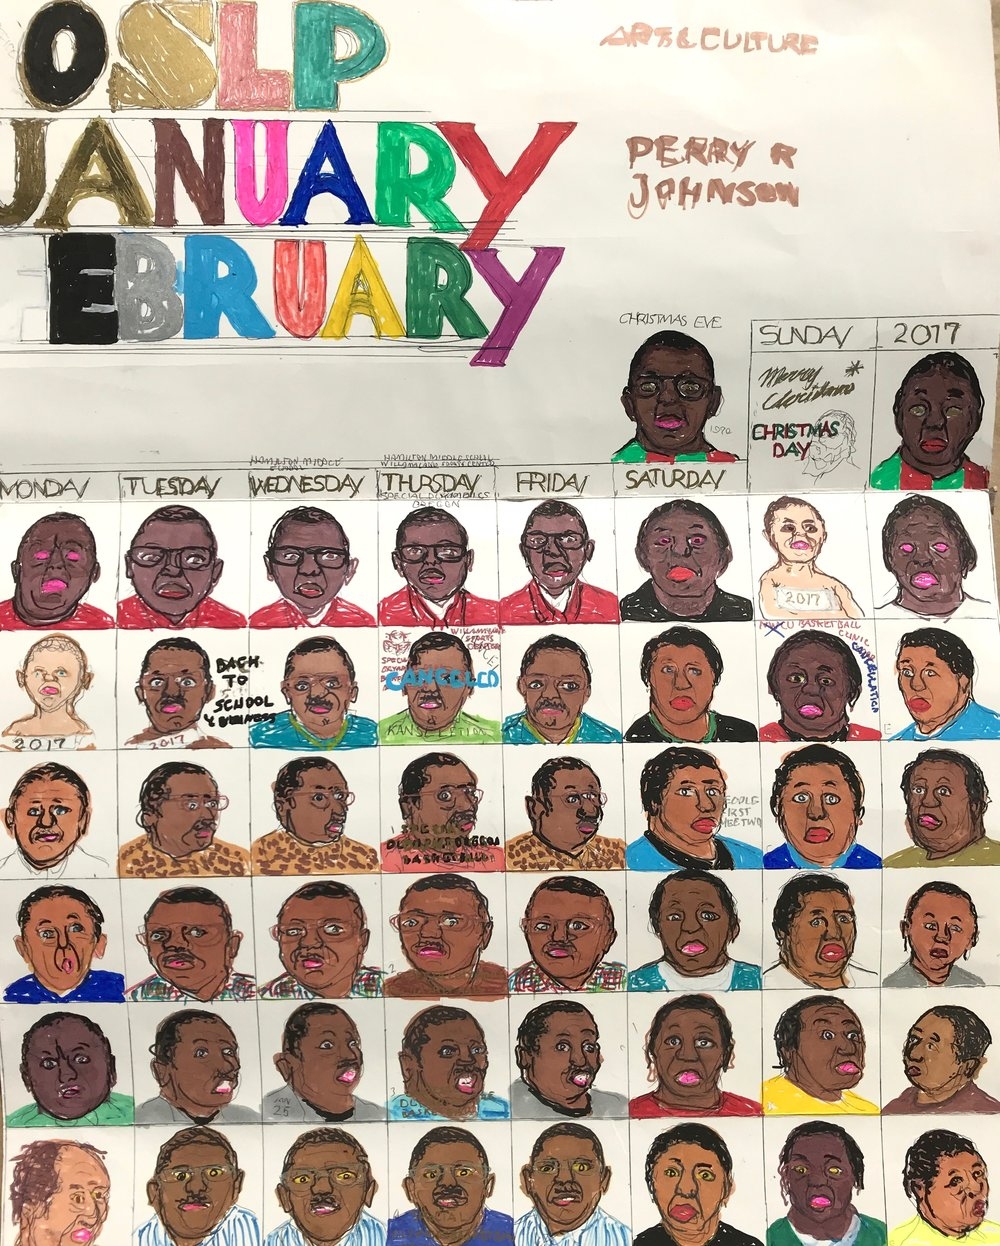 OSLP Janurary/February Calendar , Perry Johnson, 2015, marker on paper, 19 x 41 inches. On view November 17, 2017 - February 25, 2018 as part of Libby Werbel's year-long program at the Portland Art Museum: We.Construct.Marvels.Between.Monuments.